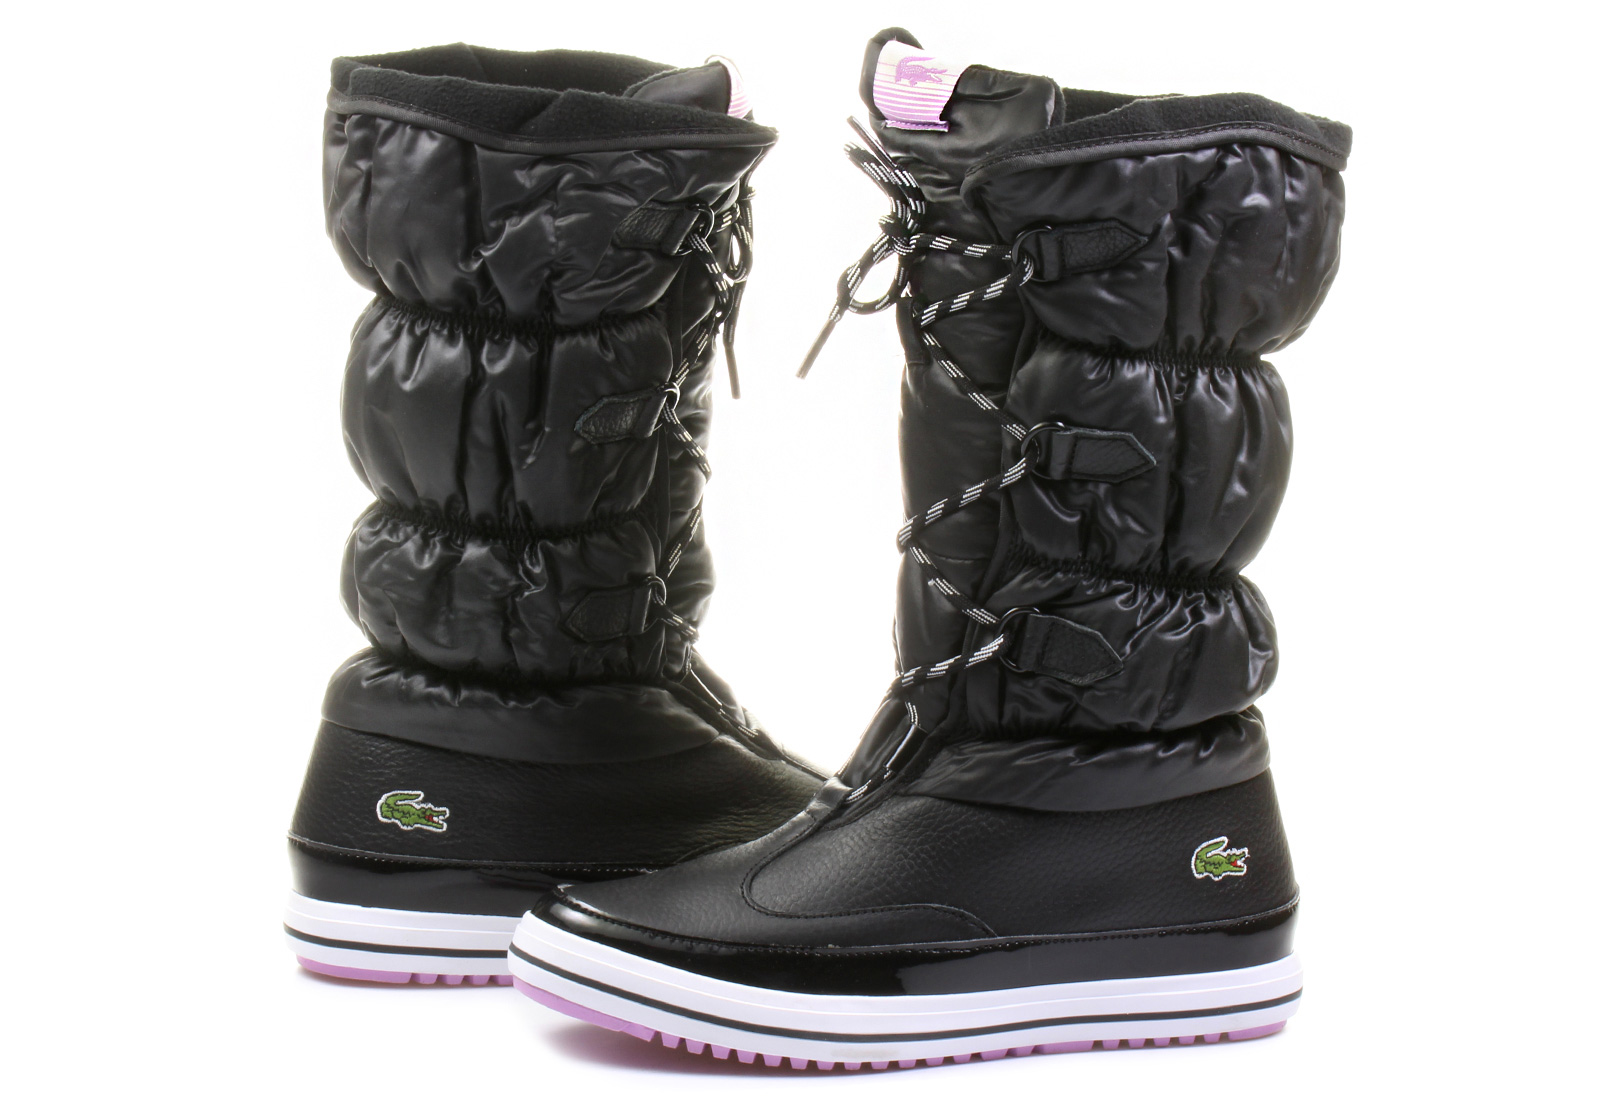 92ce7b949532f1 Lacoste Boots - Tuilerie - 133spw1017-5x0 - Online shop for sneakers ...